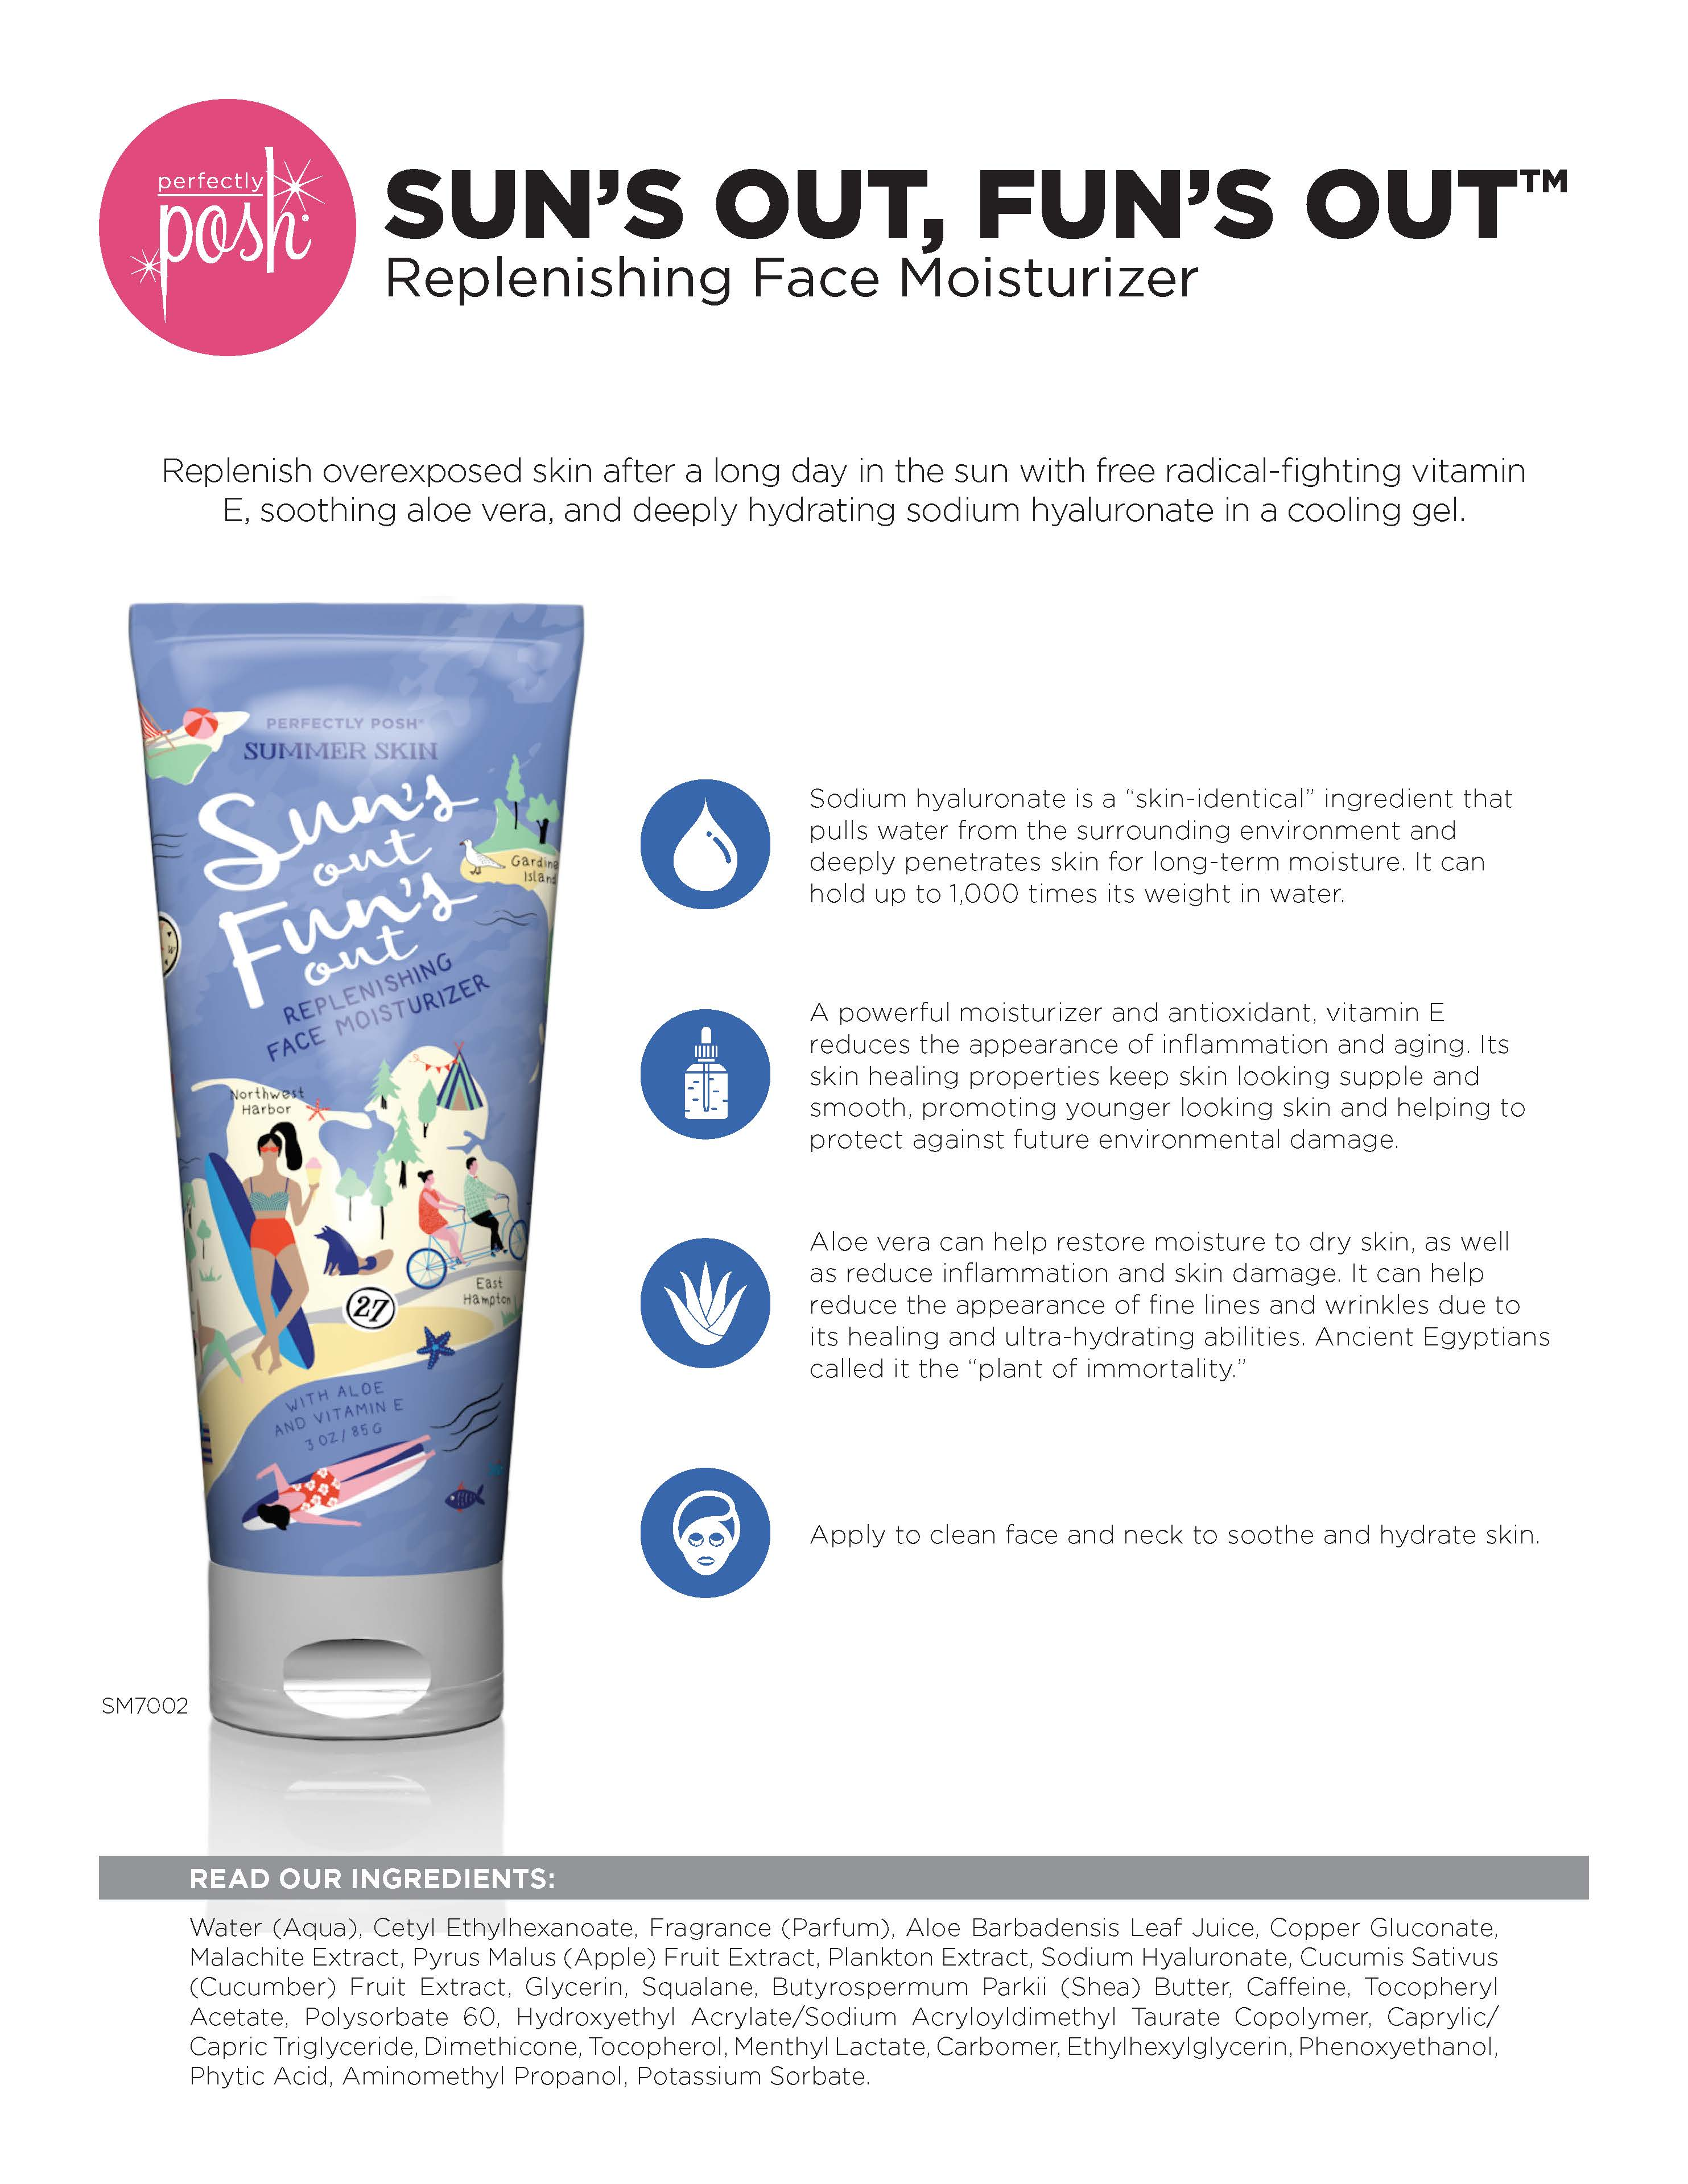 Sun's Out, Fun's Out Replenishing Face Moisturizer